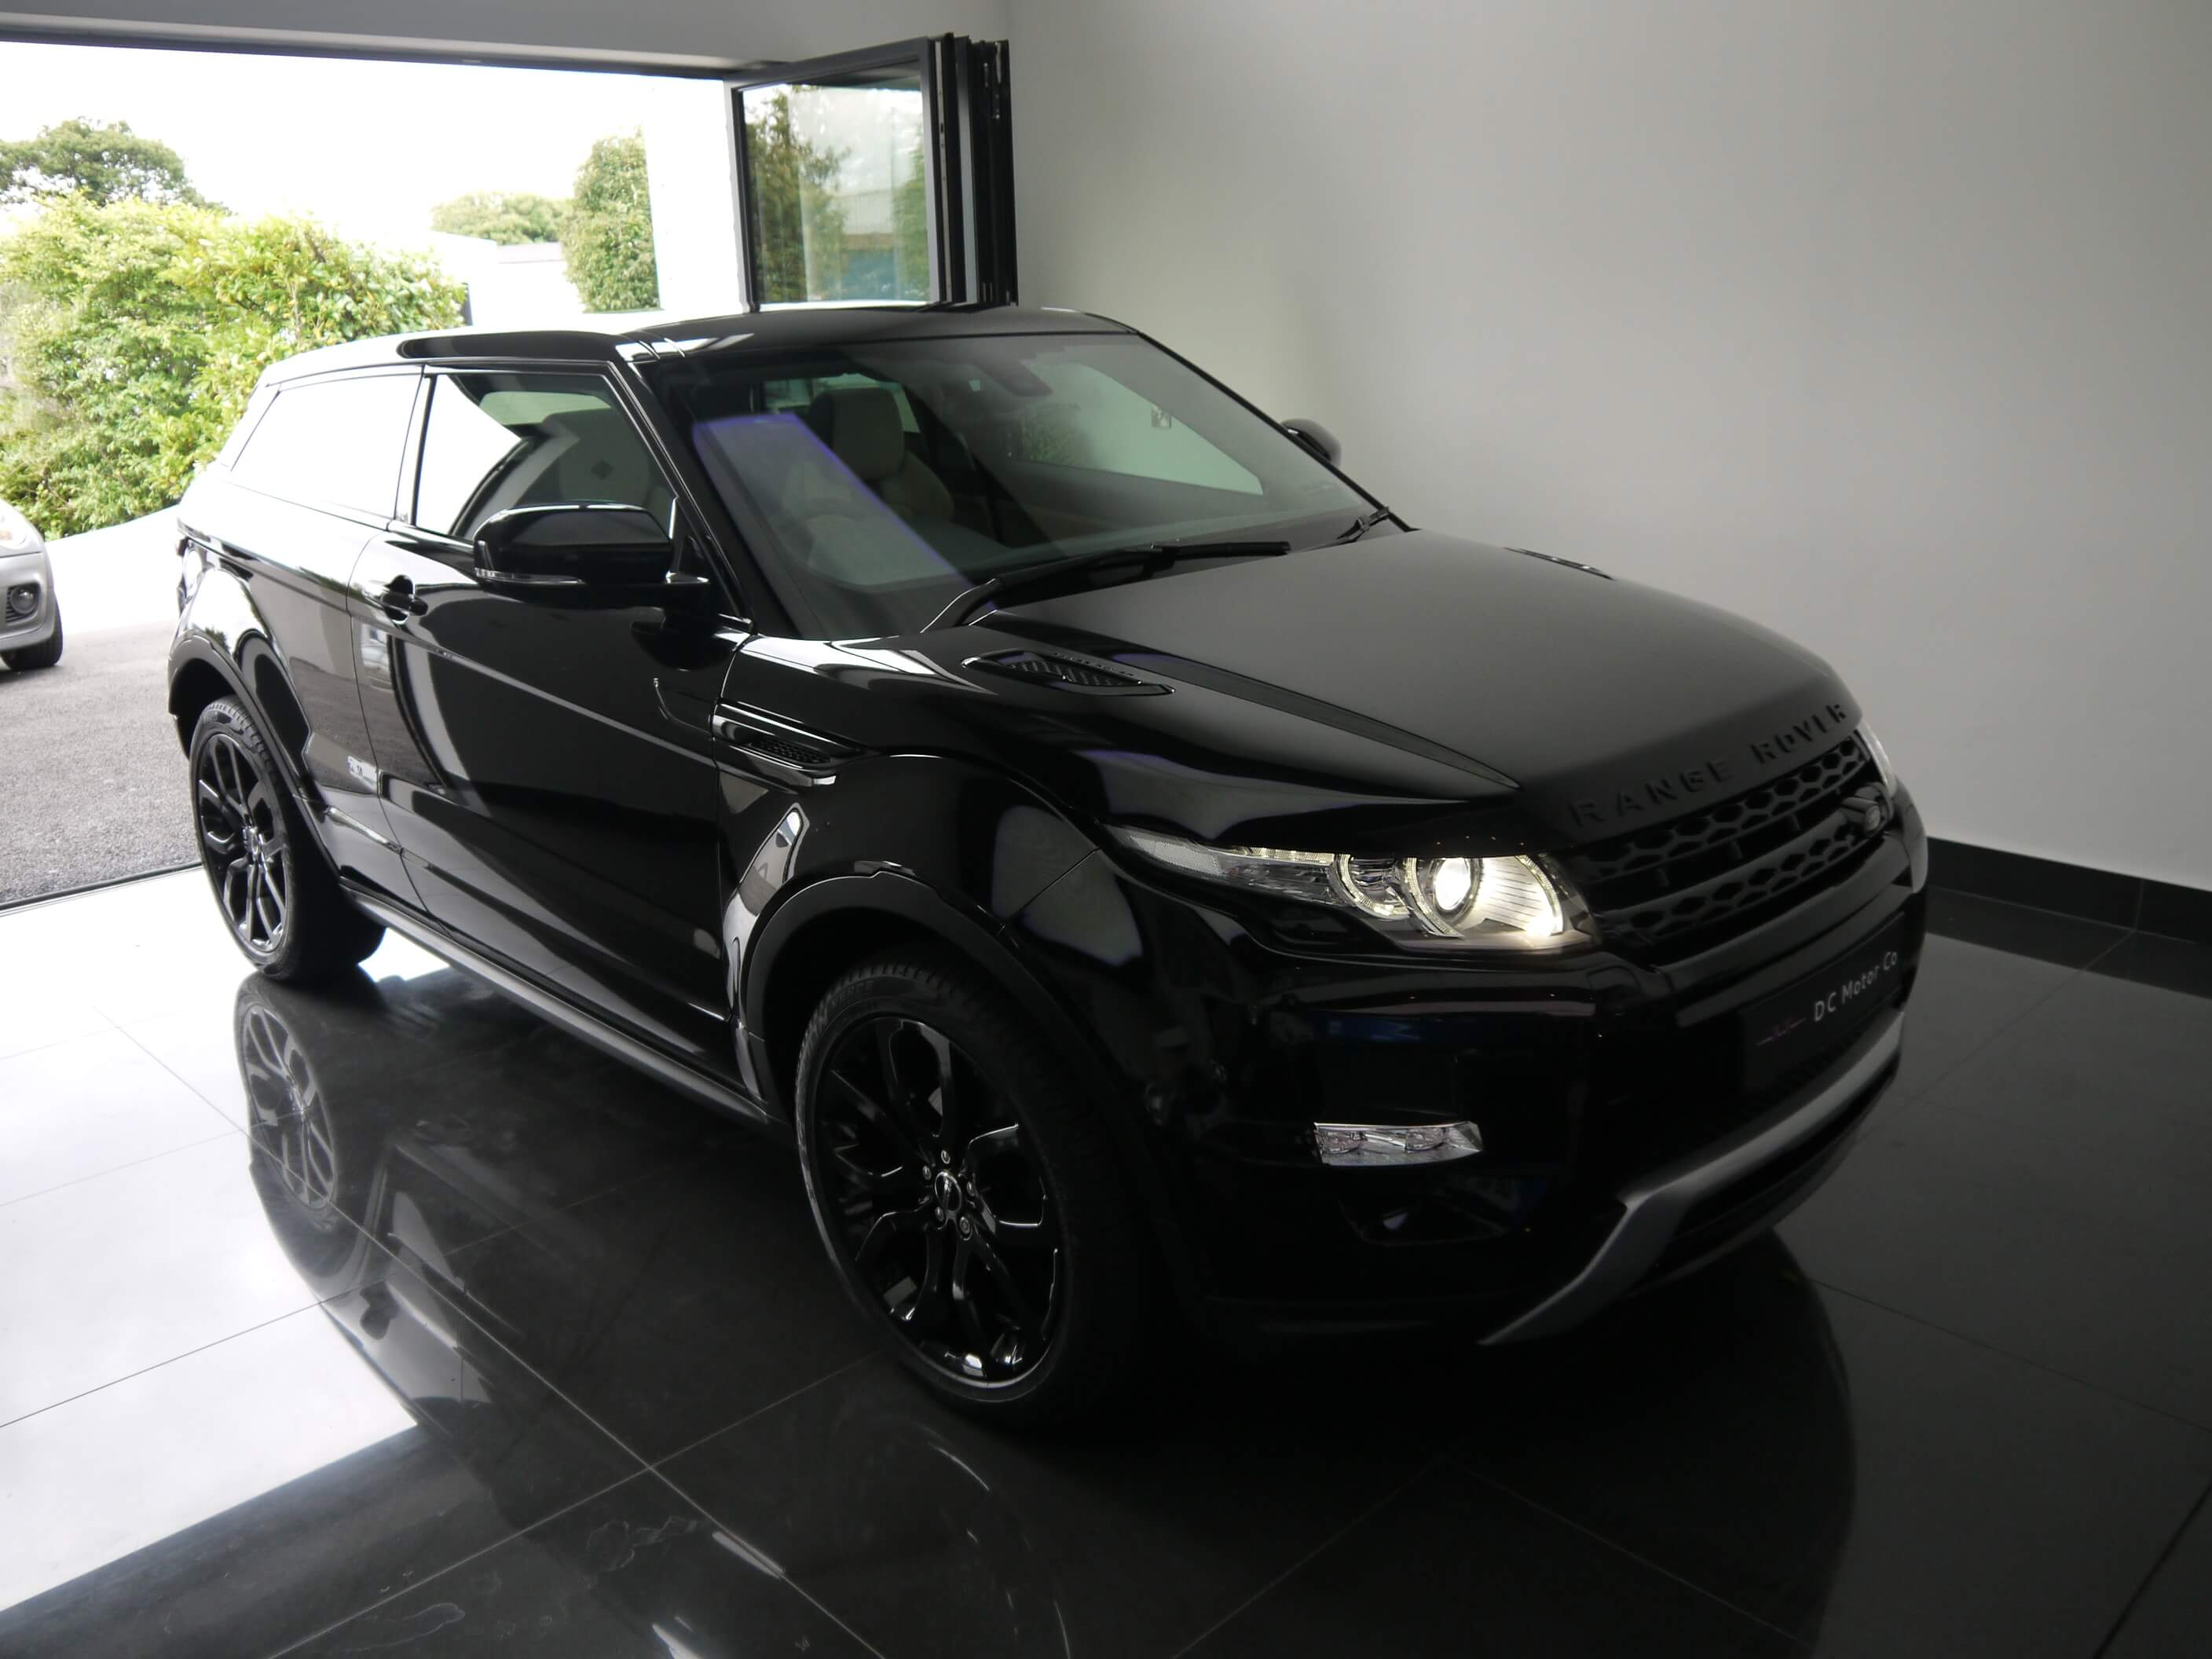 Evoque Panramic Roof Range Rover Evoque Glass Roof This